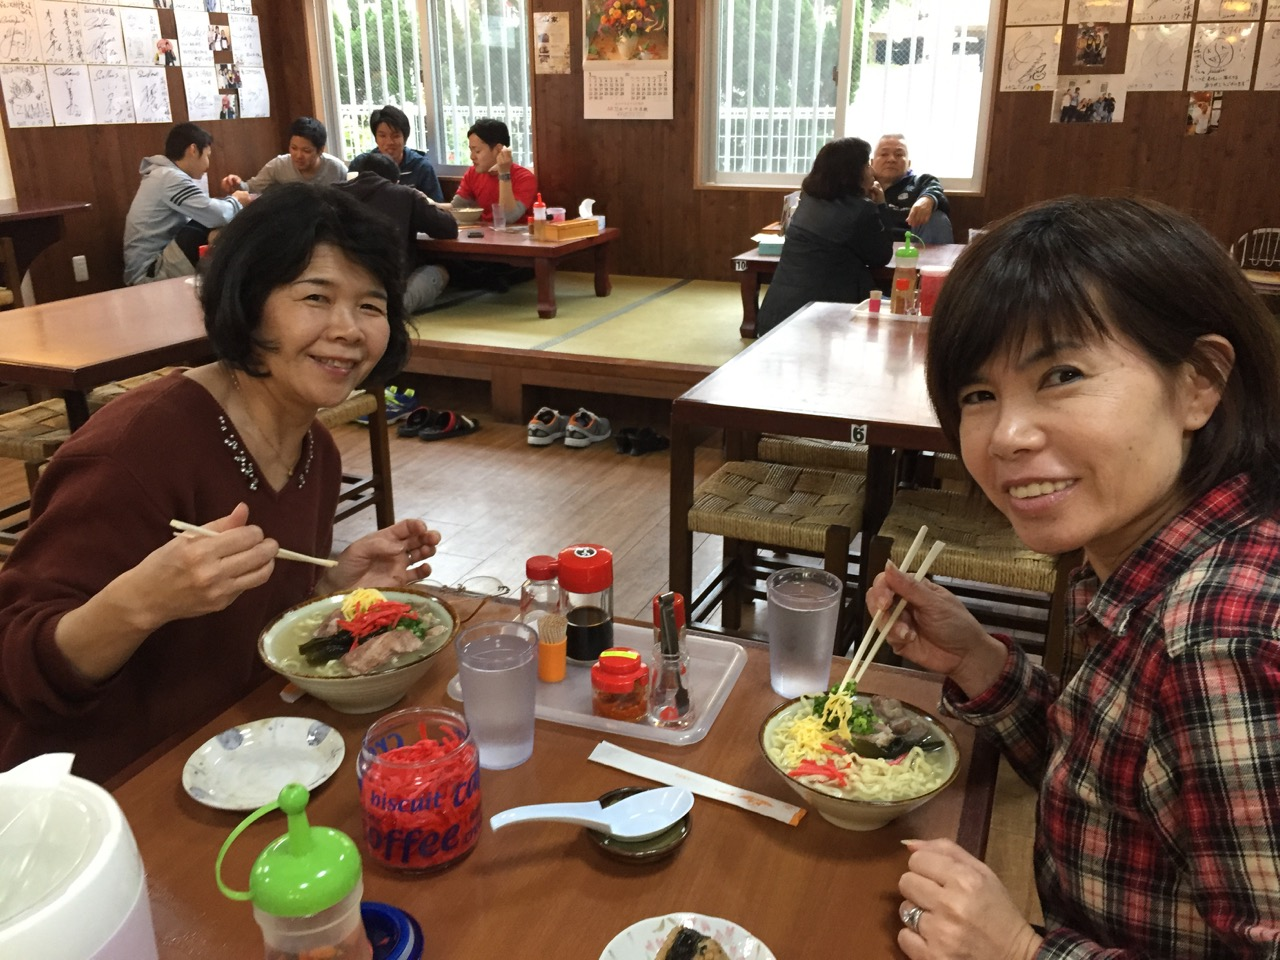 Sisters Keiko (right) and Yasuko get ready to devour their soba. (Photos by Colin Sewake)